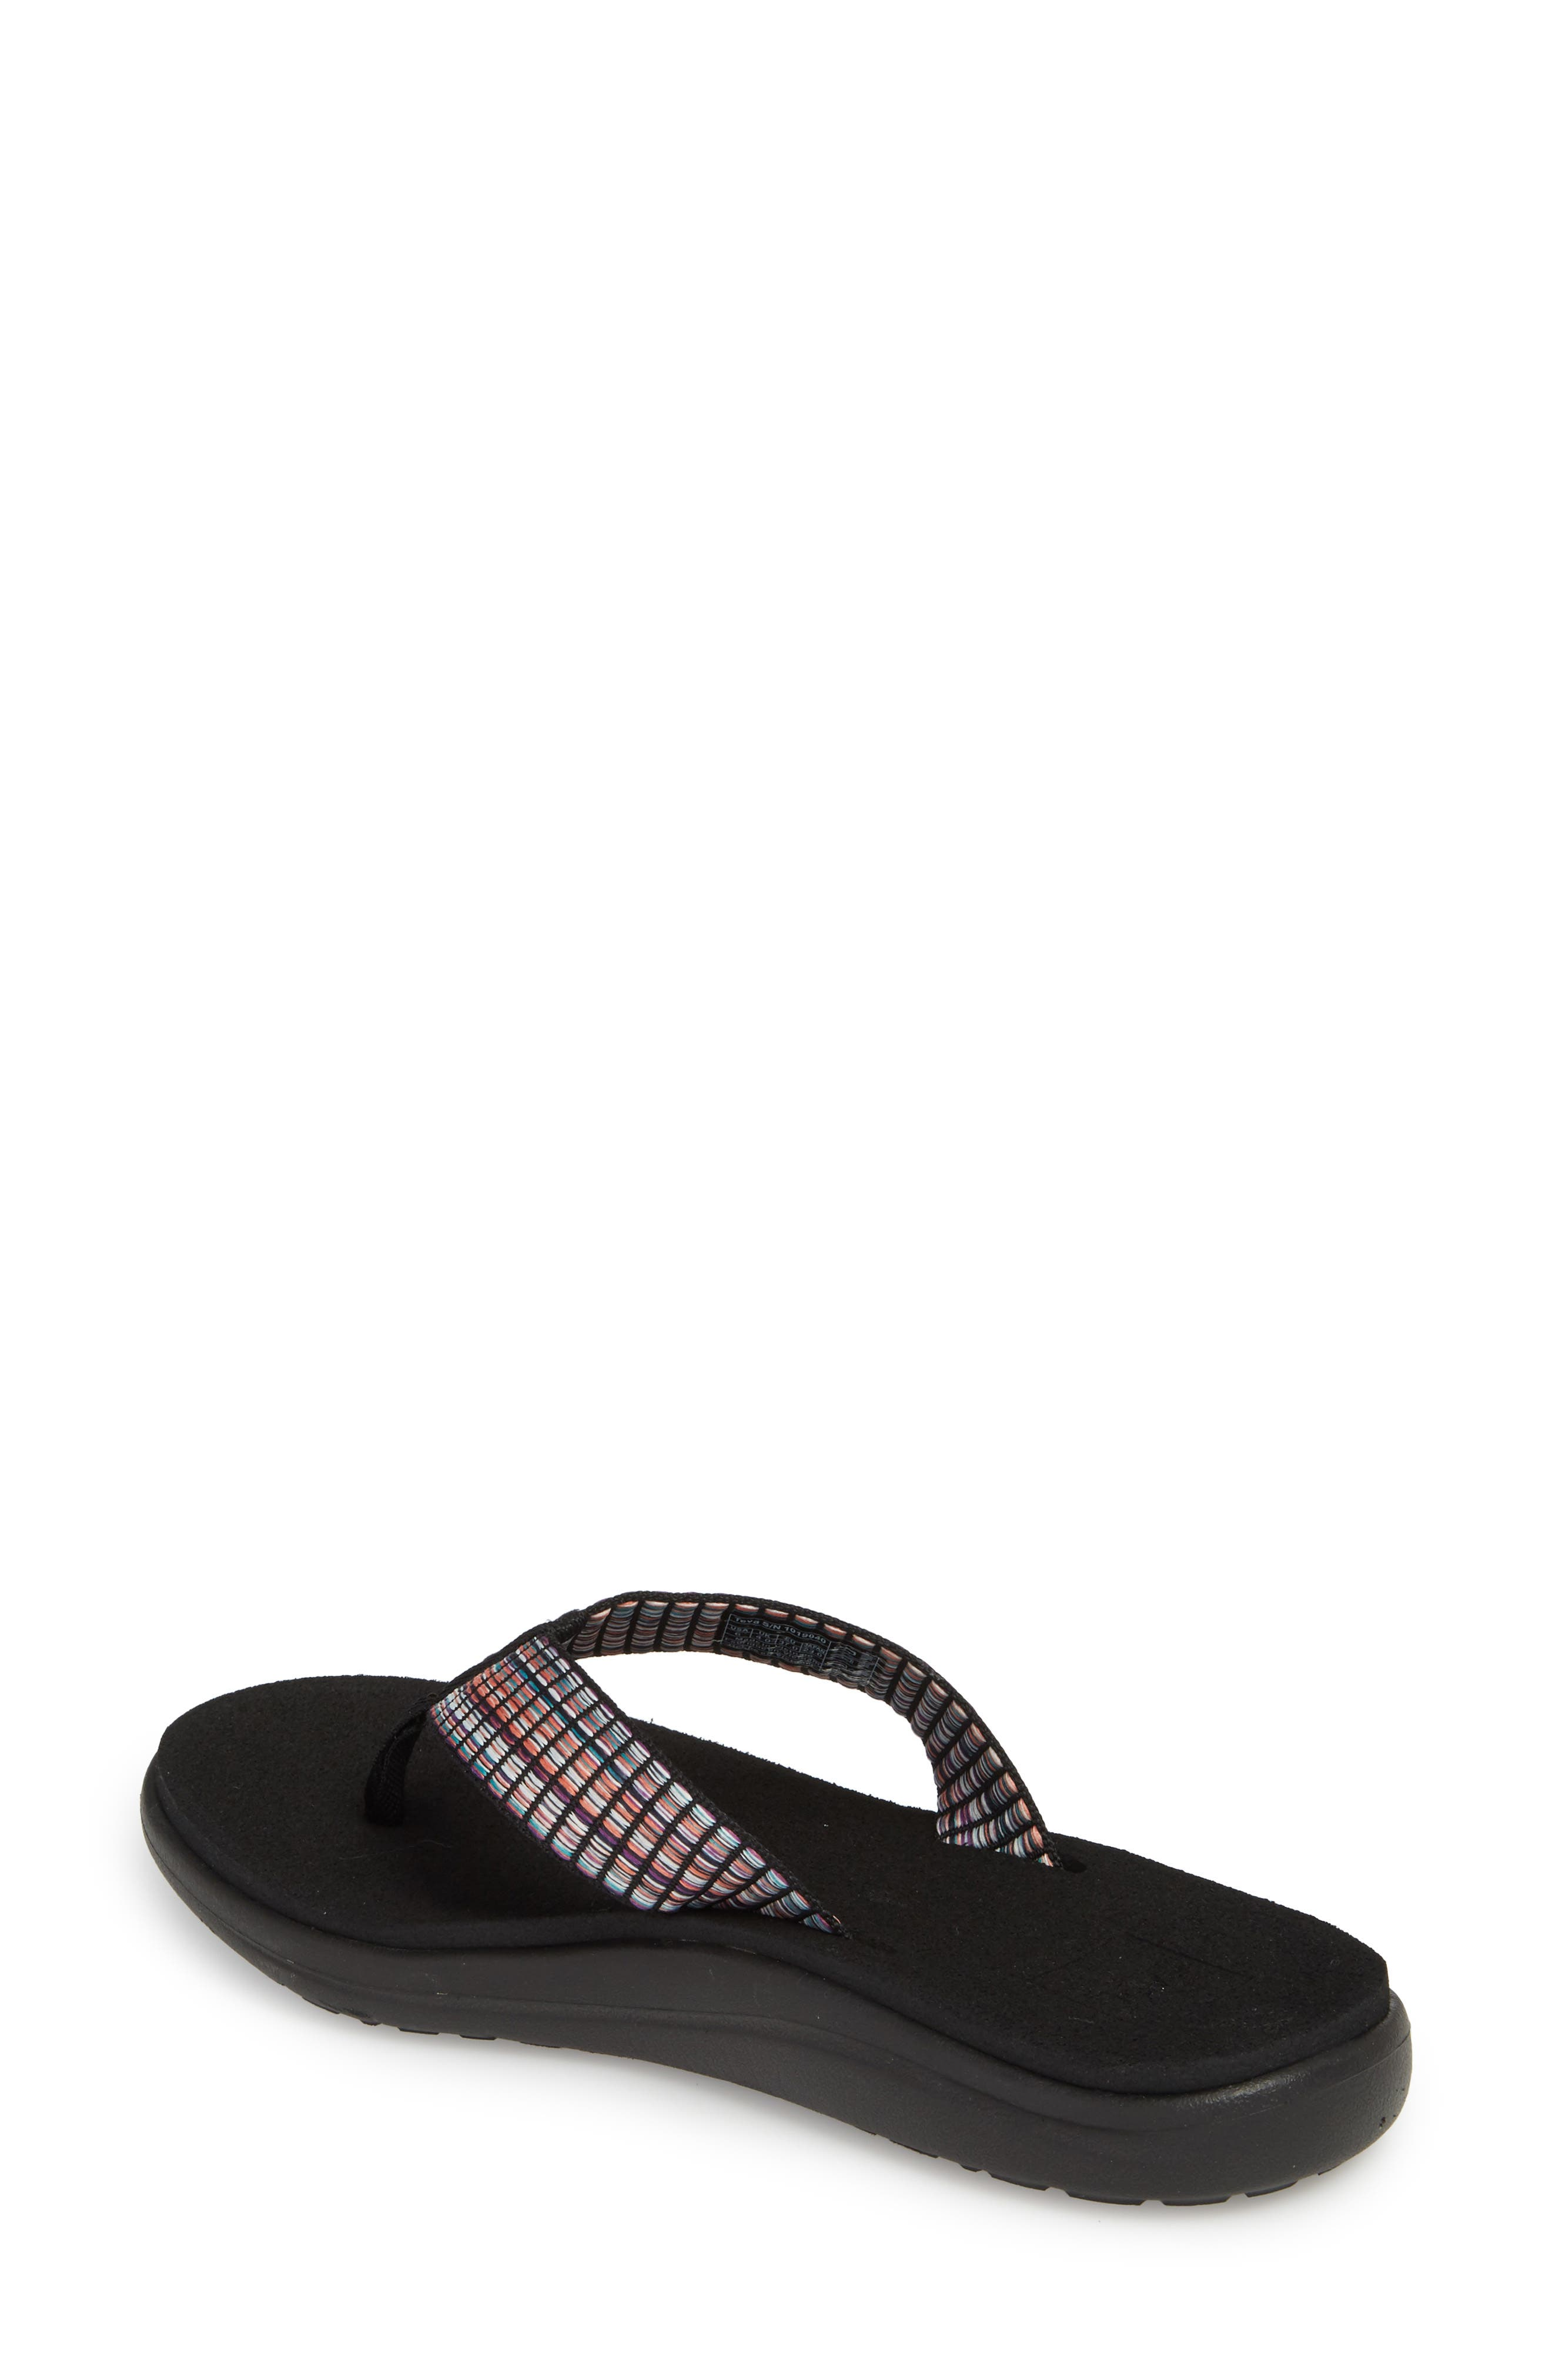 TEVA, Voya Flip Flop, Alternate thumbnail 2, color, 001